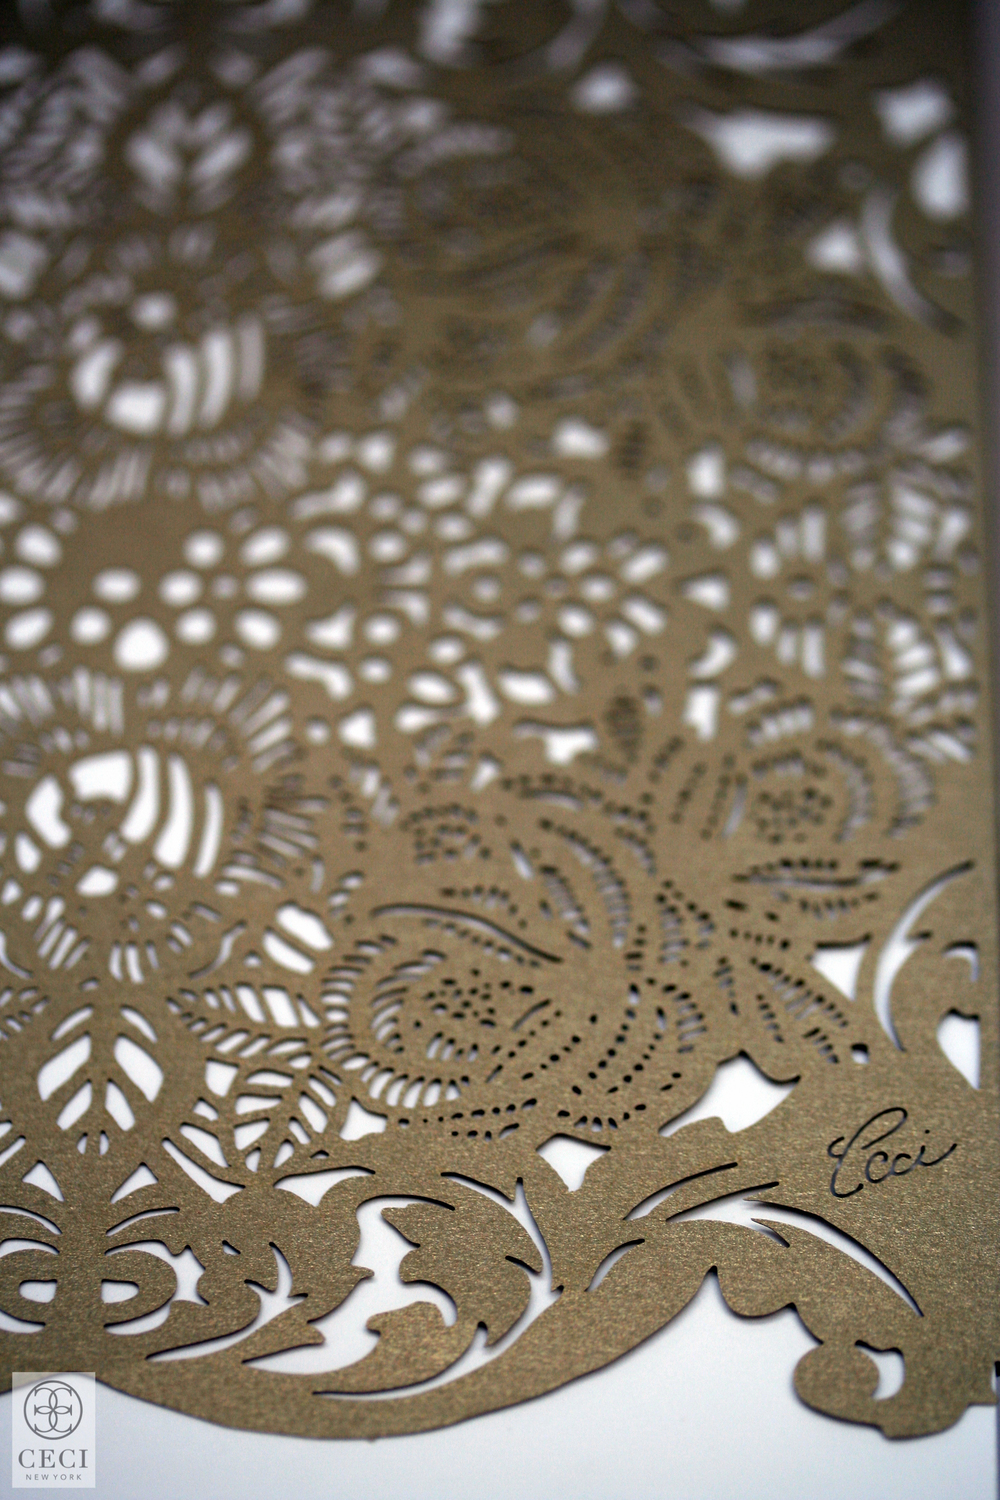 Ceci_New_York_Ceci_Style_Ceci_Johnson_Luxury_Lifestyle_Floral_Lace_Wedding_Letterpress_Inspiration_Design_Custom_Couture_Personalized_Invitations_-4.jpg